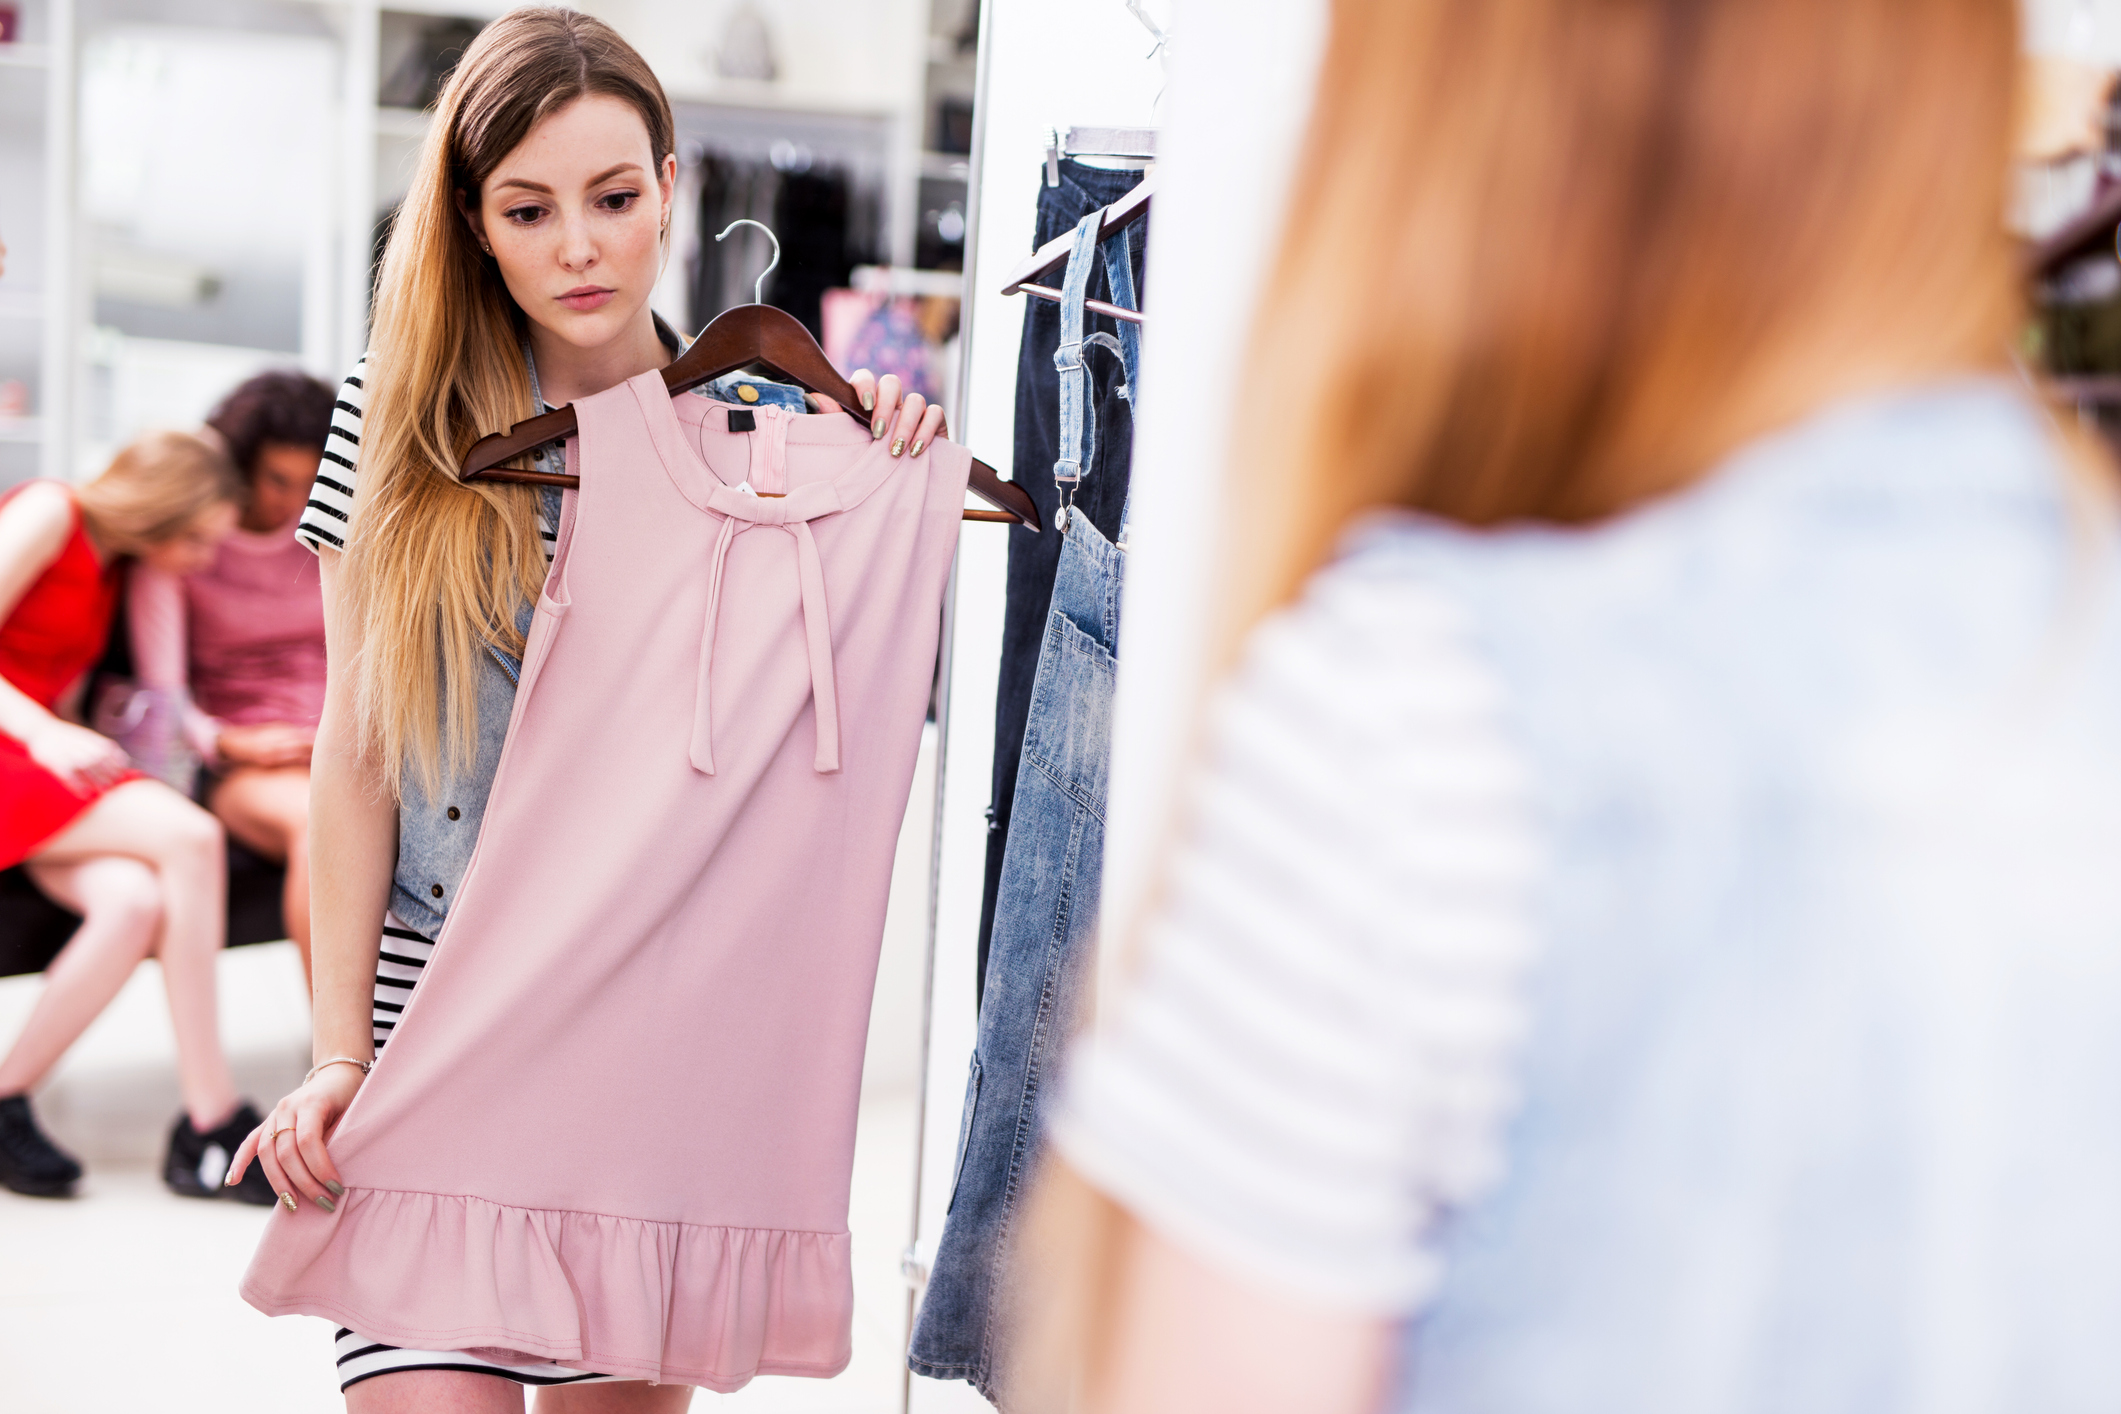 Young woman choosing new pink dress in a fashion boutique.